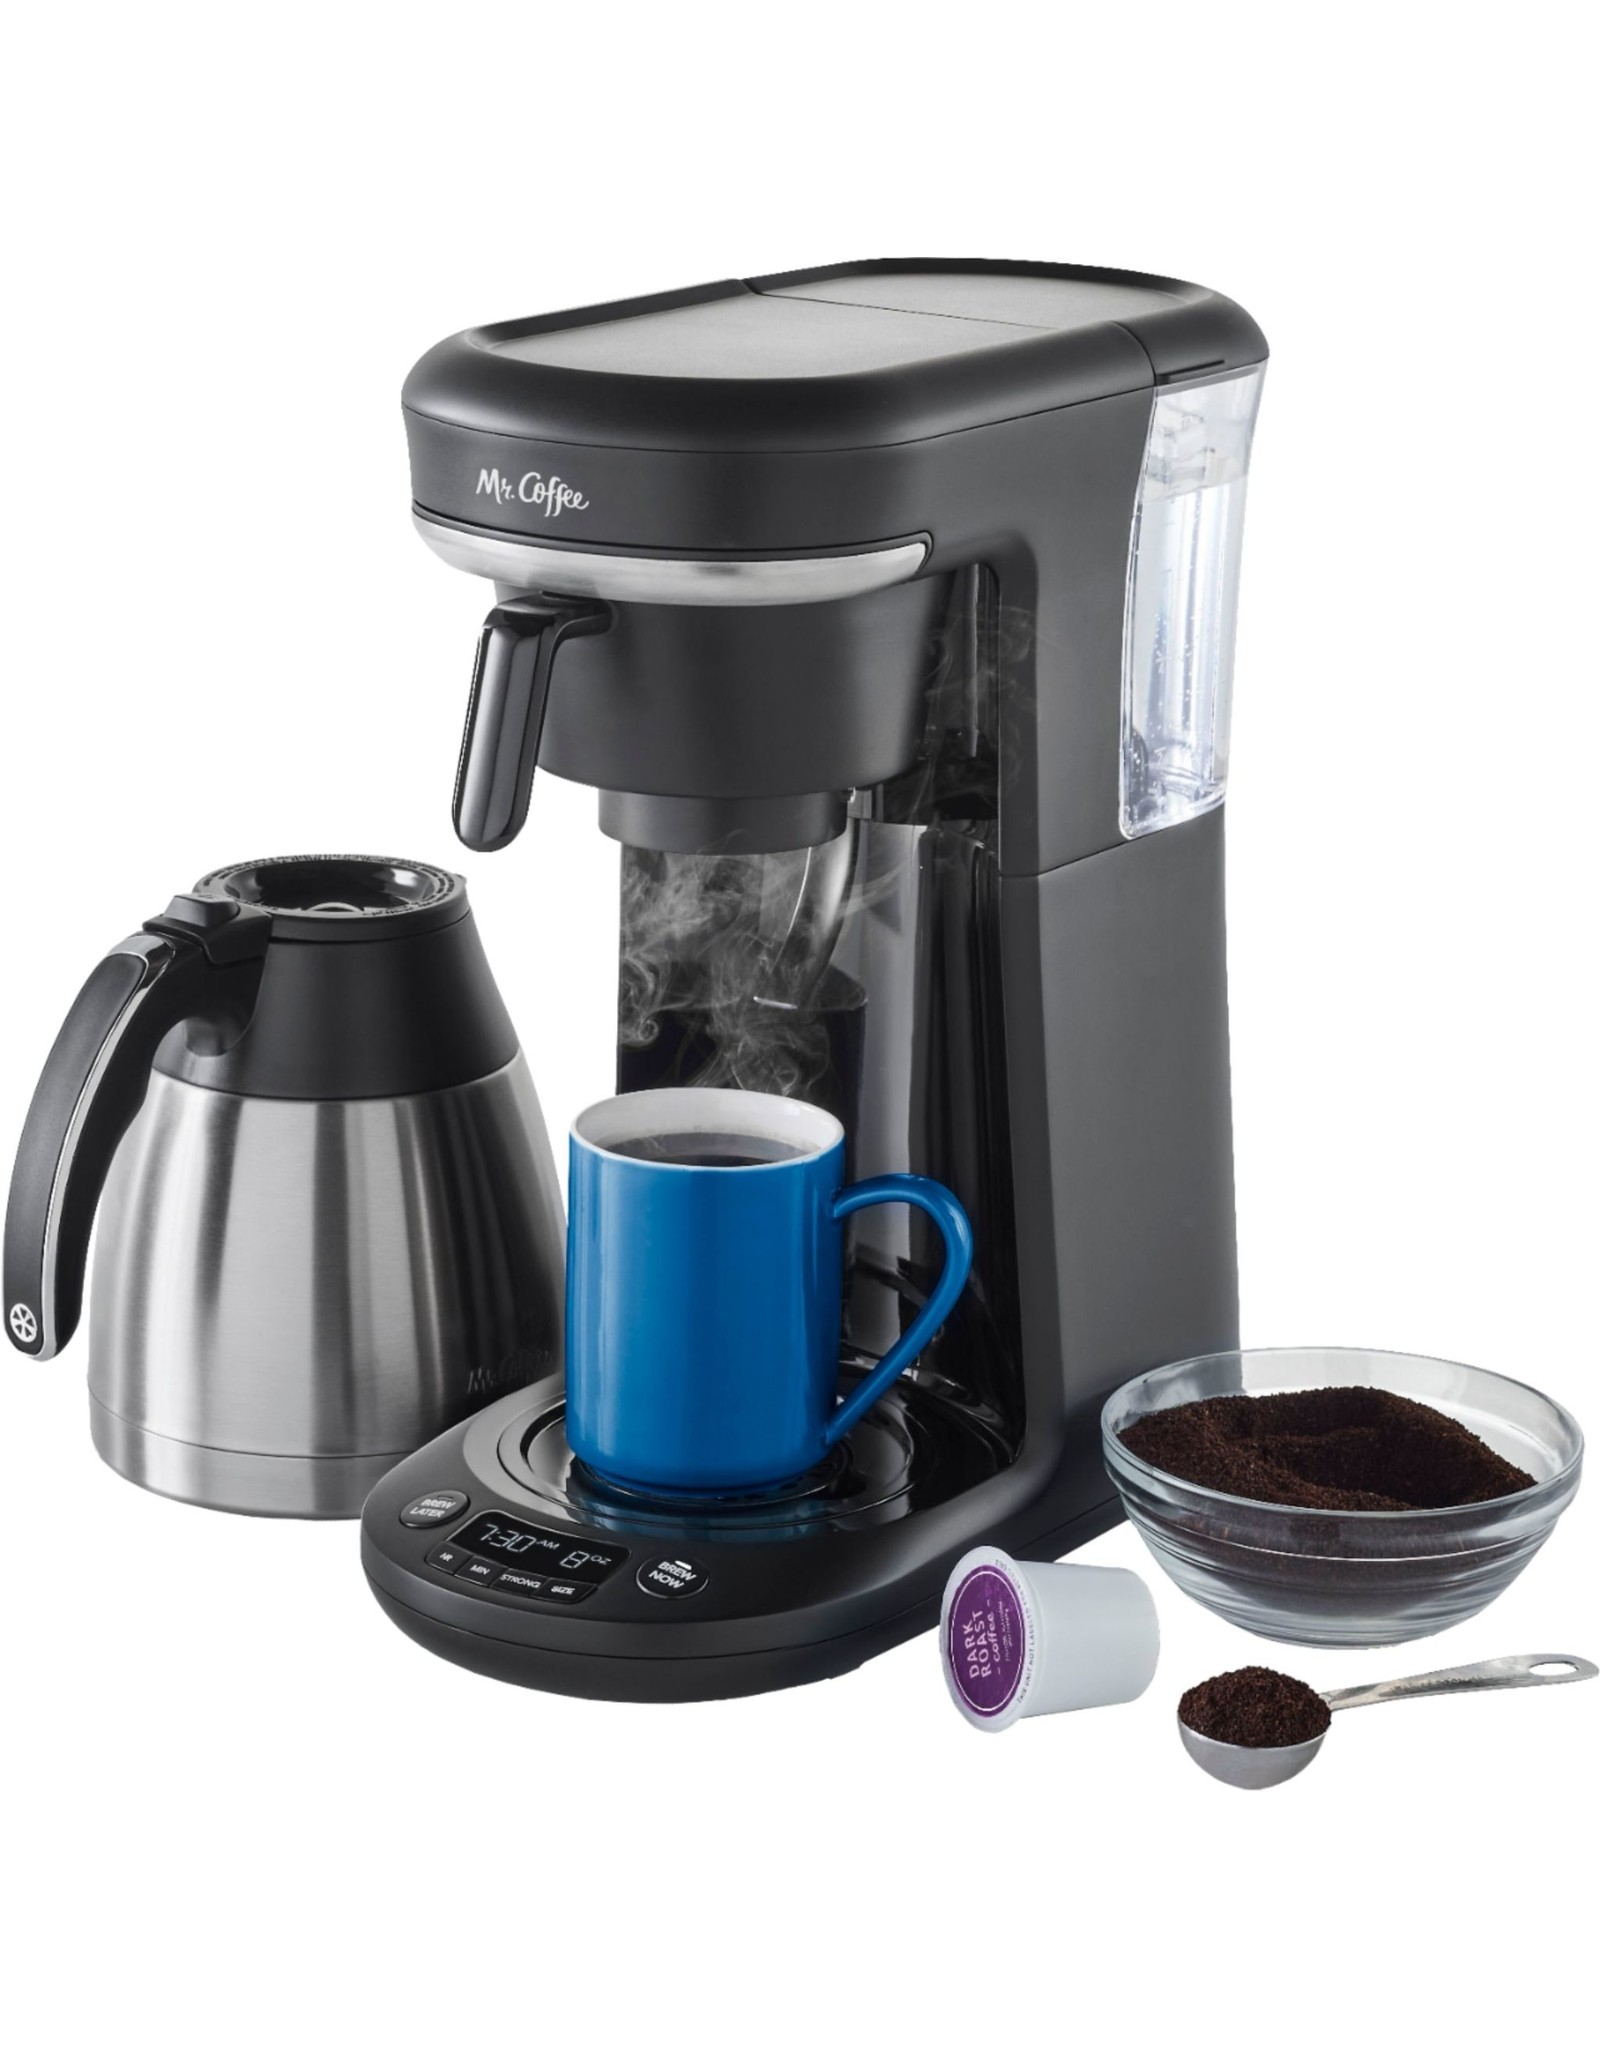 mr. coffee 2121469 Mr. Coffee - Space-Saving Combo 10-Cup Coffee Maker and Pod Single Serve Brewer - Stainless-Steel/Black